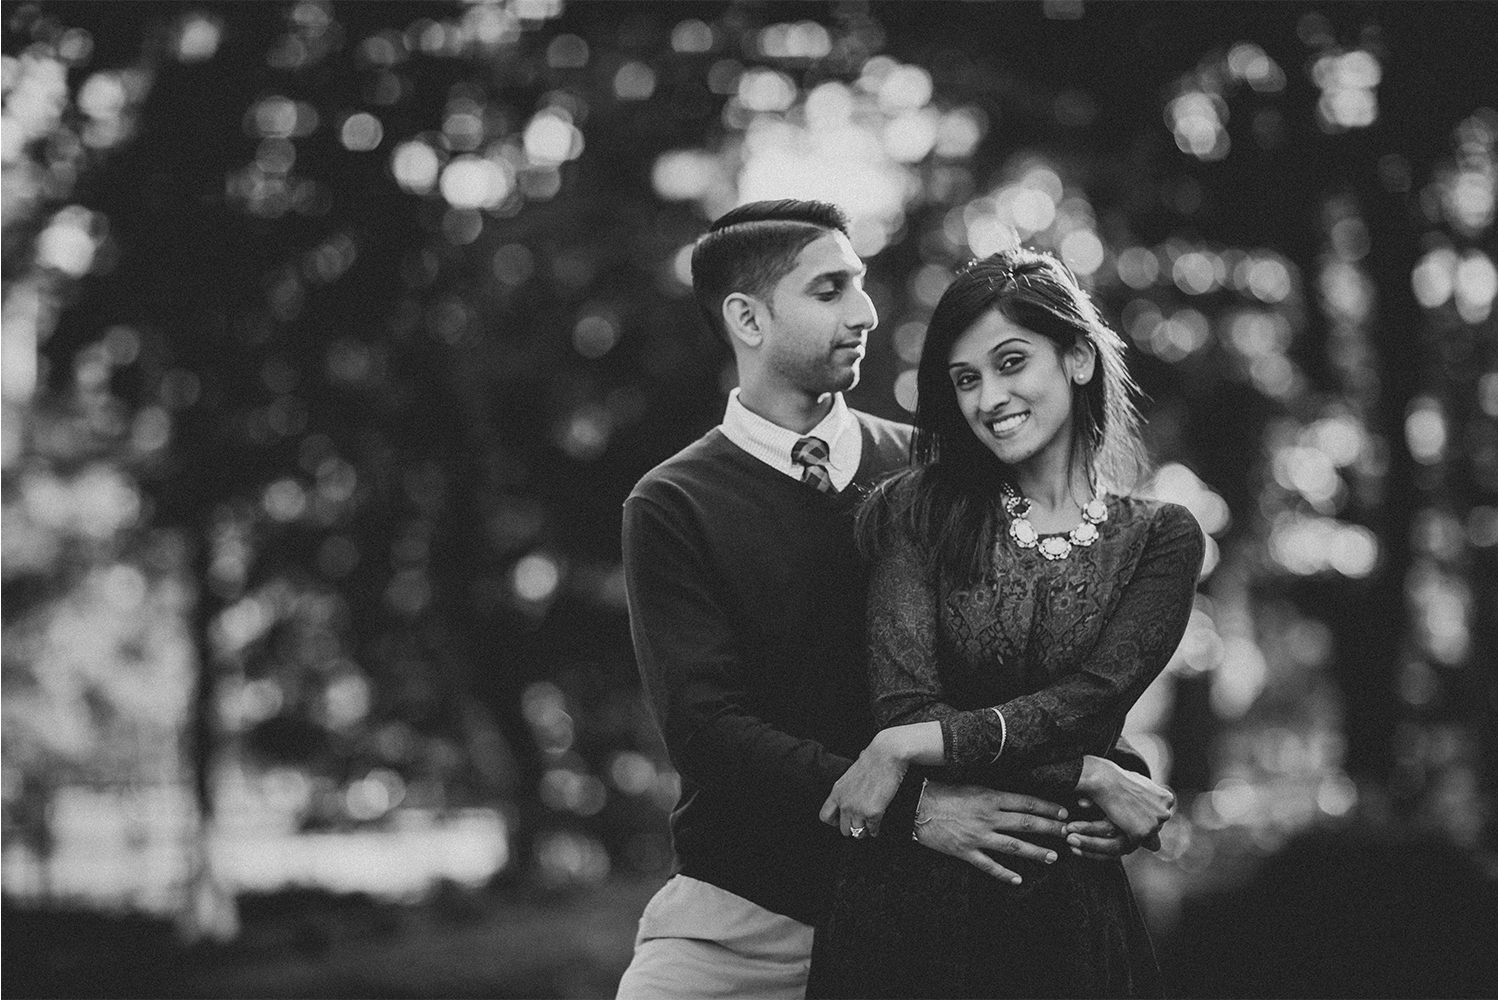 South_Asian_Wedding_Photography_Engagement_Session_006.jpg